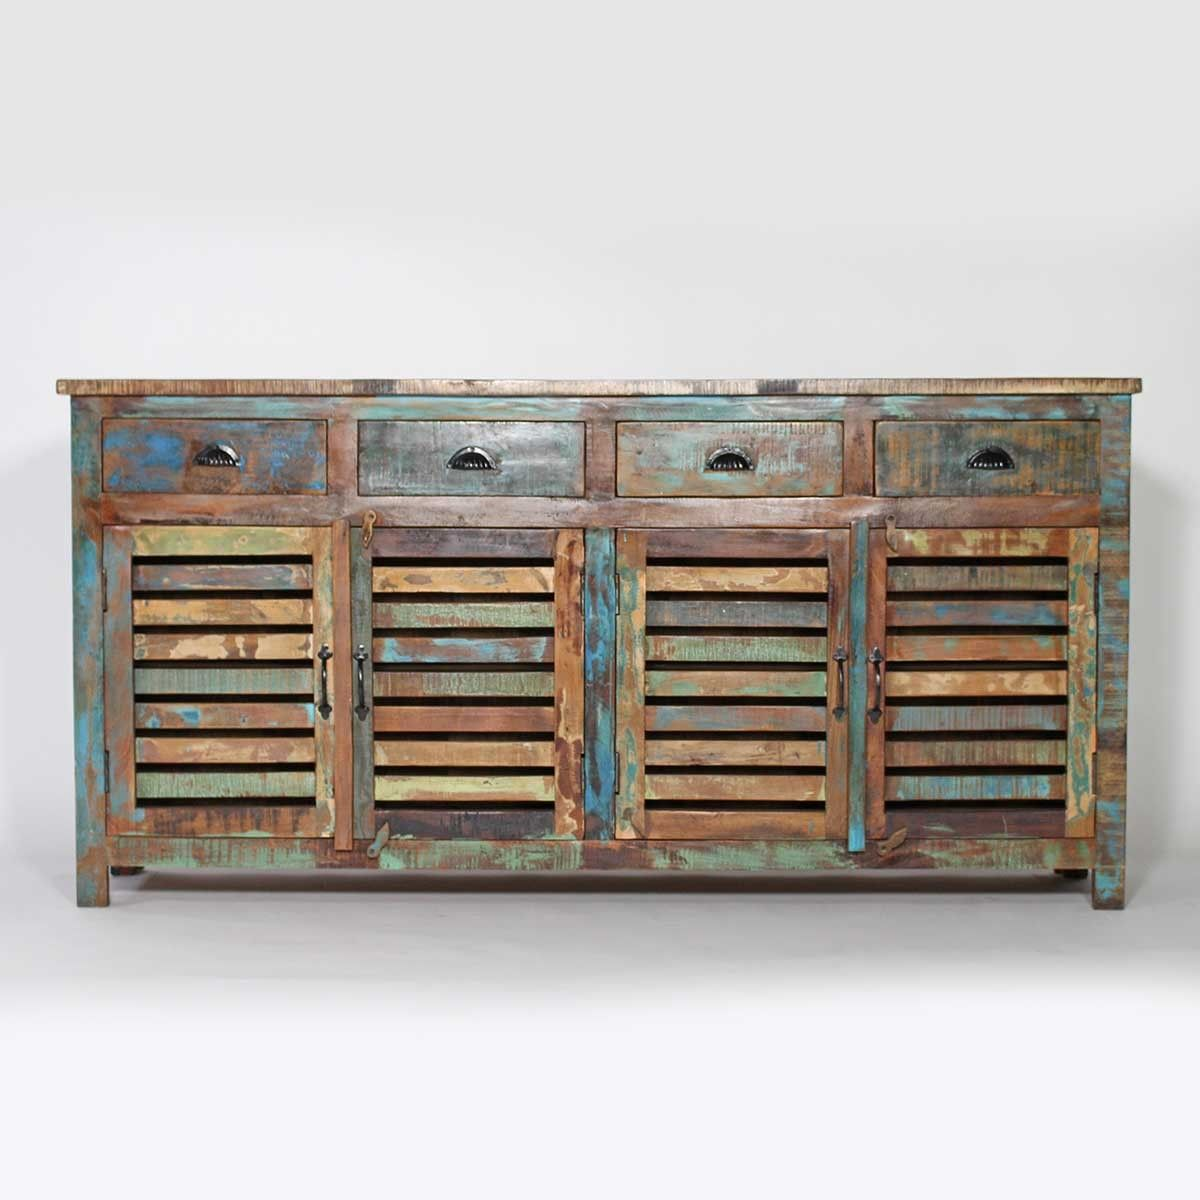 Grand Buffet En Bois De Manguier Recycl D Co D Coration  # Meuble Recuperation Bois Et Metal